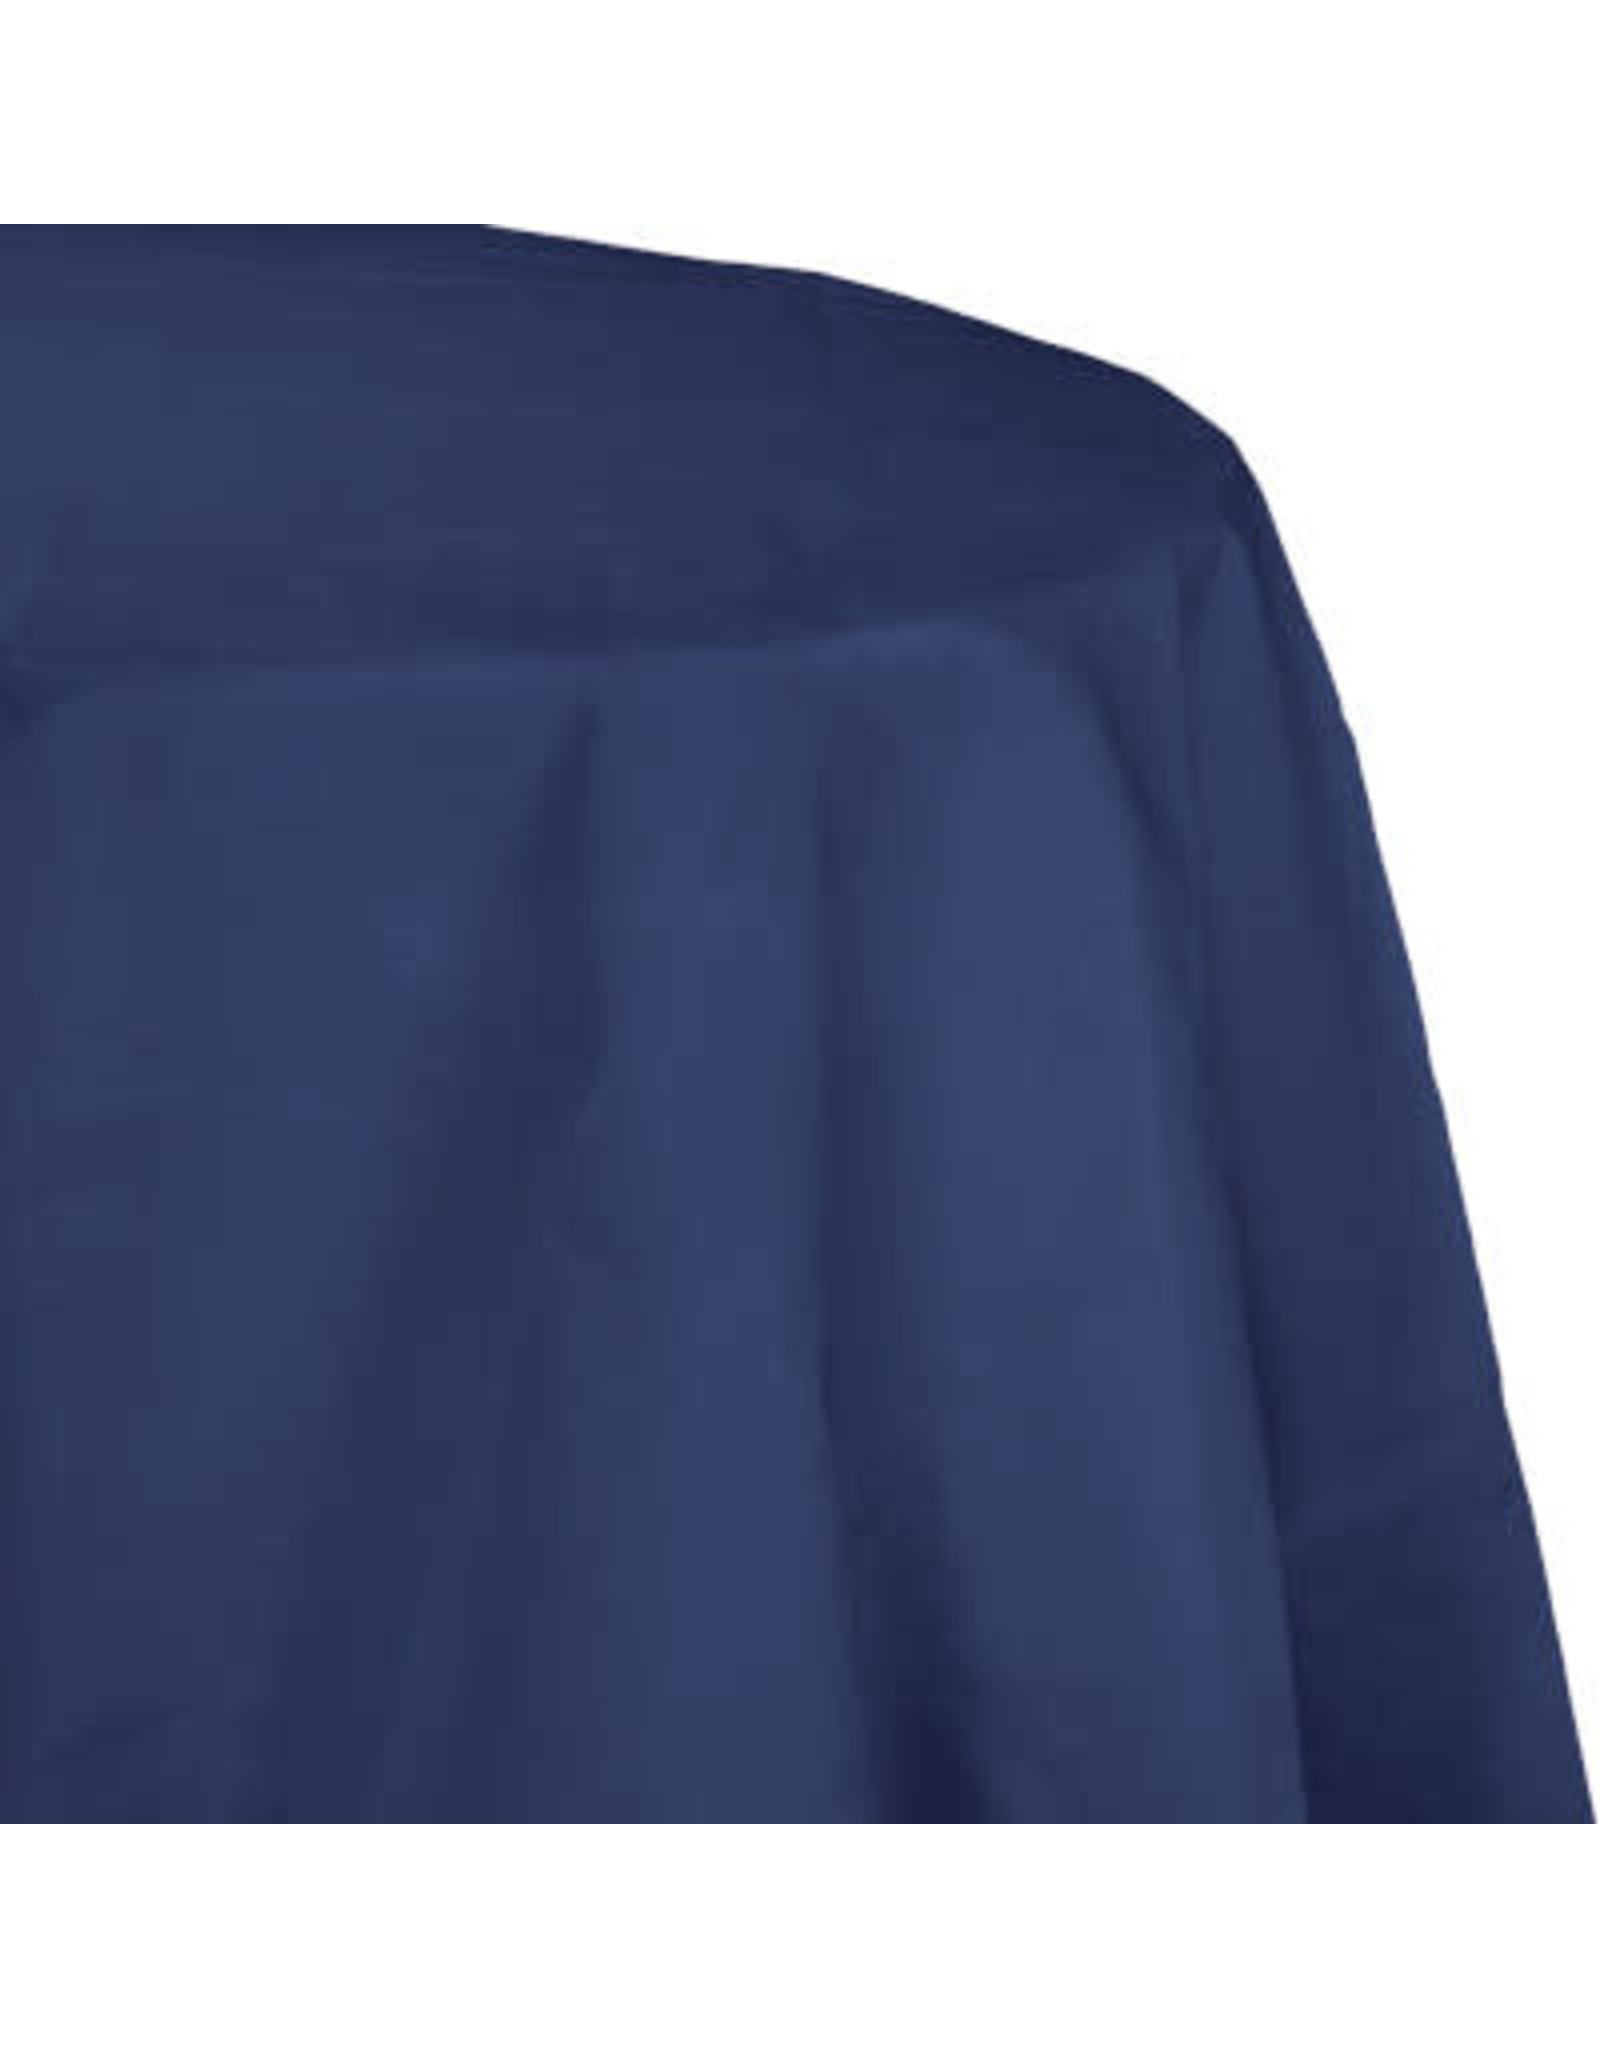 Touch of Color NAVY BLUE OCTY ROUND PAPER TABLECLOTH